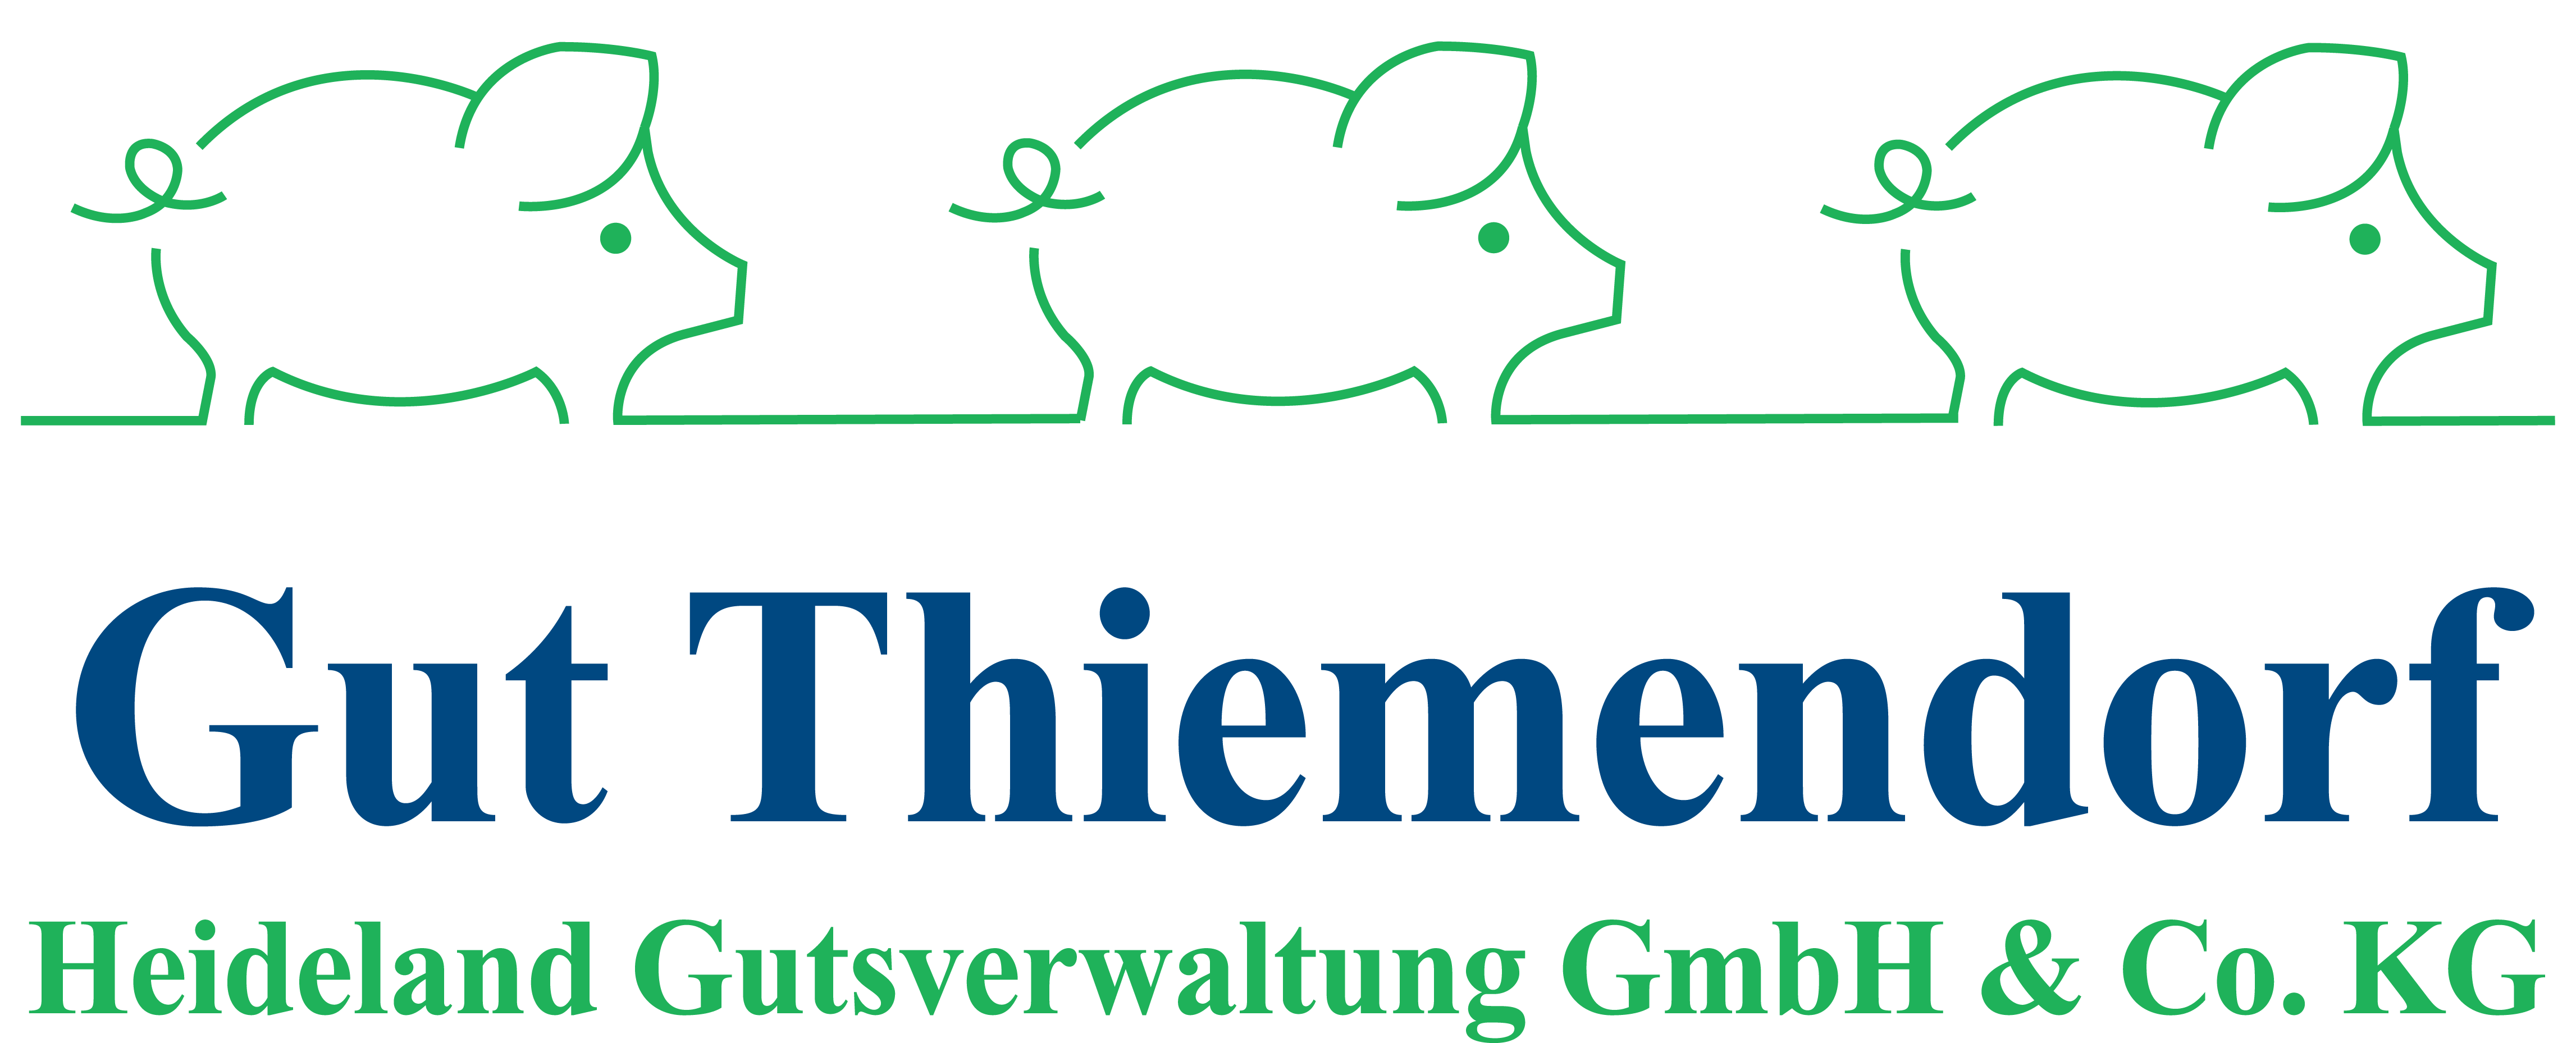 Logo Gut Thiemendorf GmbH & Co. KG